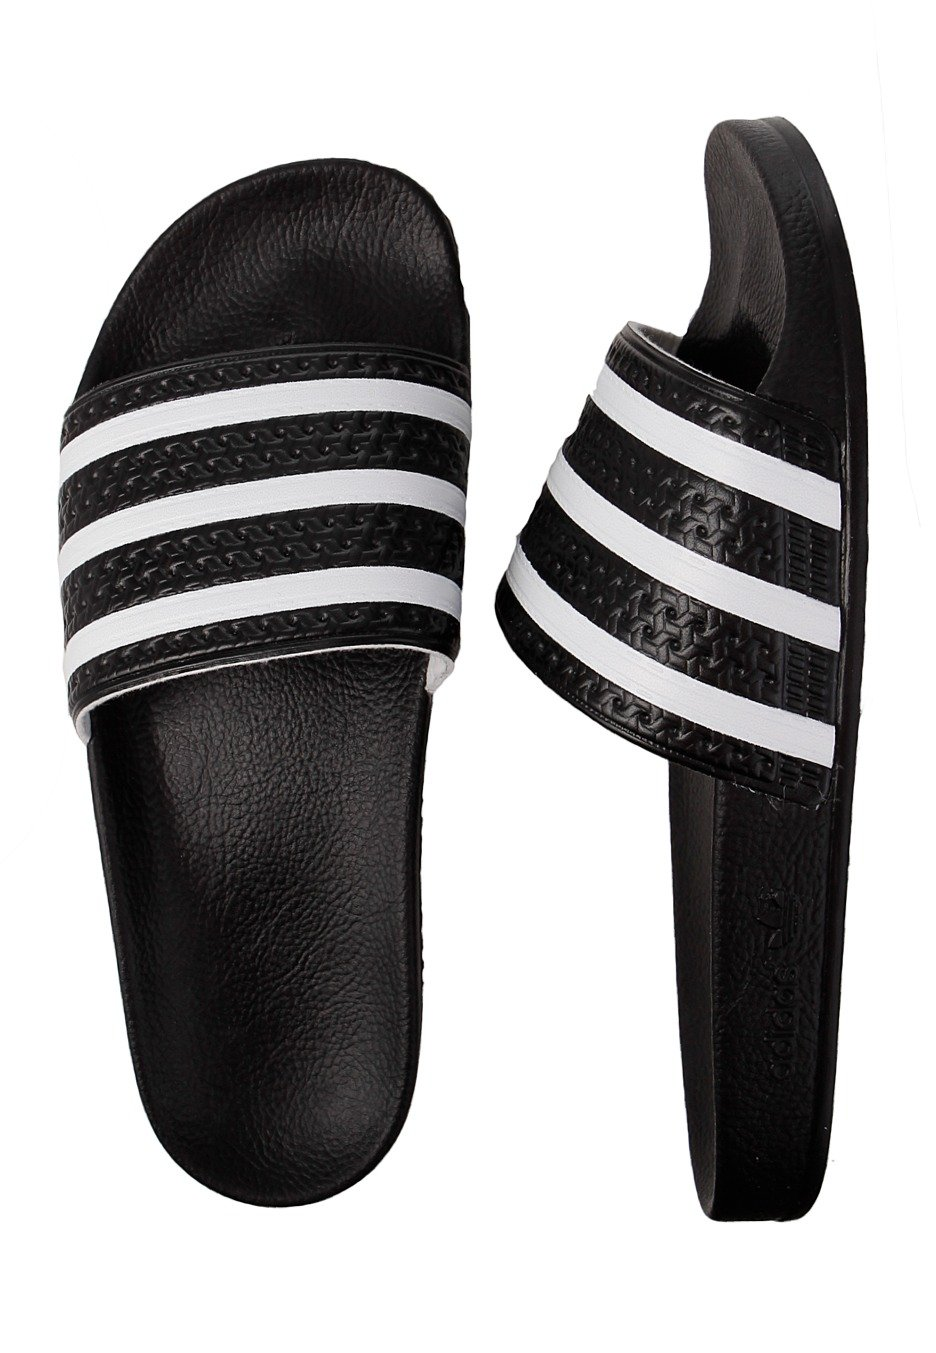 new style 06d52 5b69e Adidas - Adilette Black White - Sandals - Impericon.com Worldwide